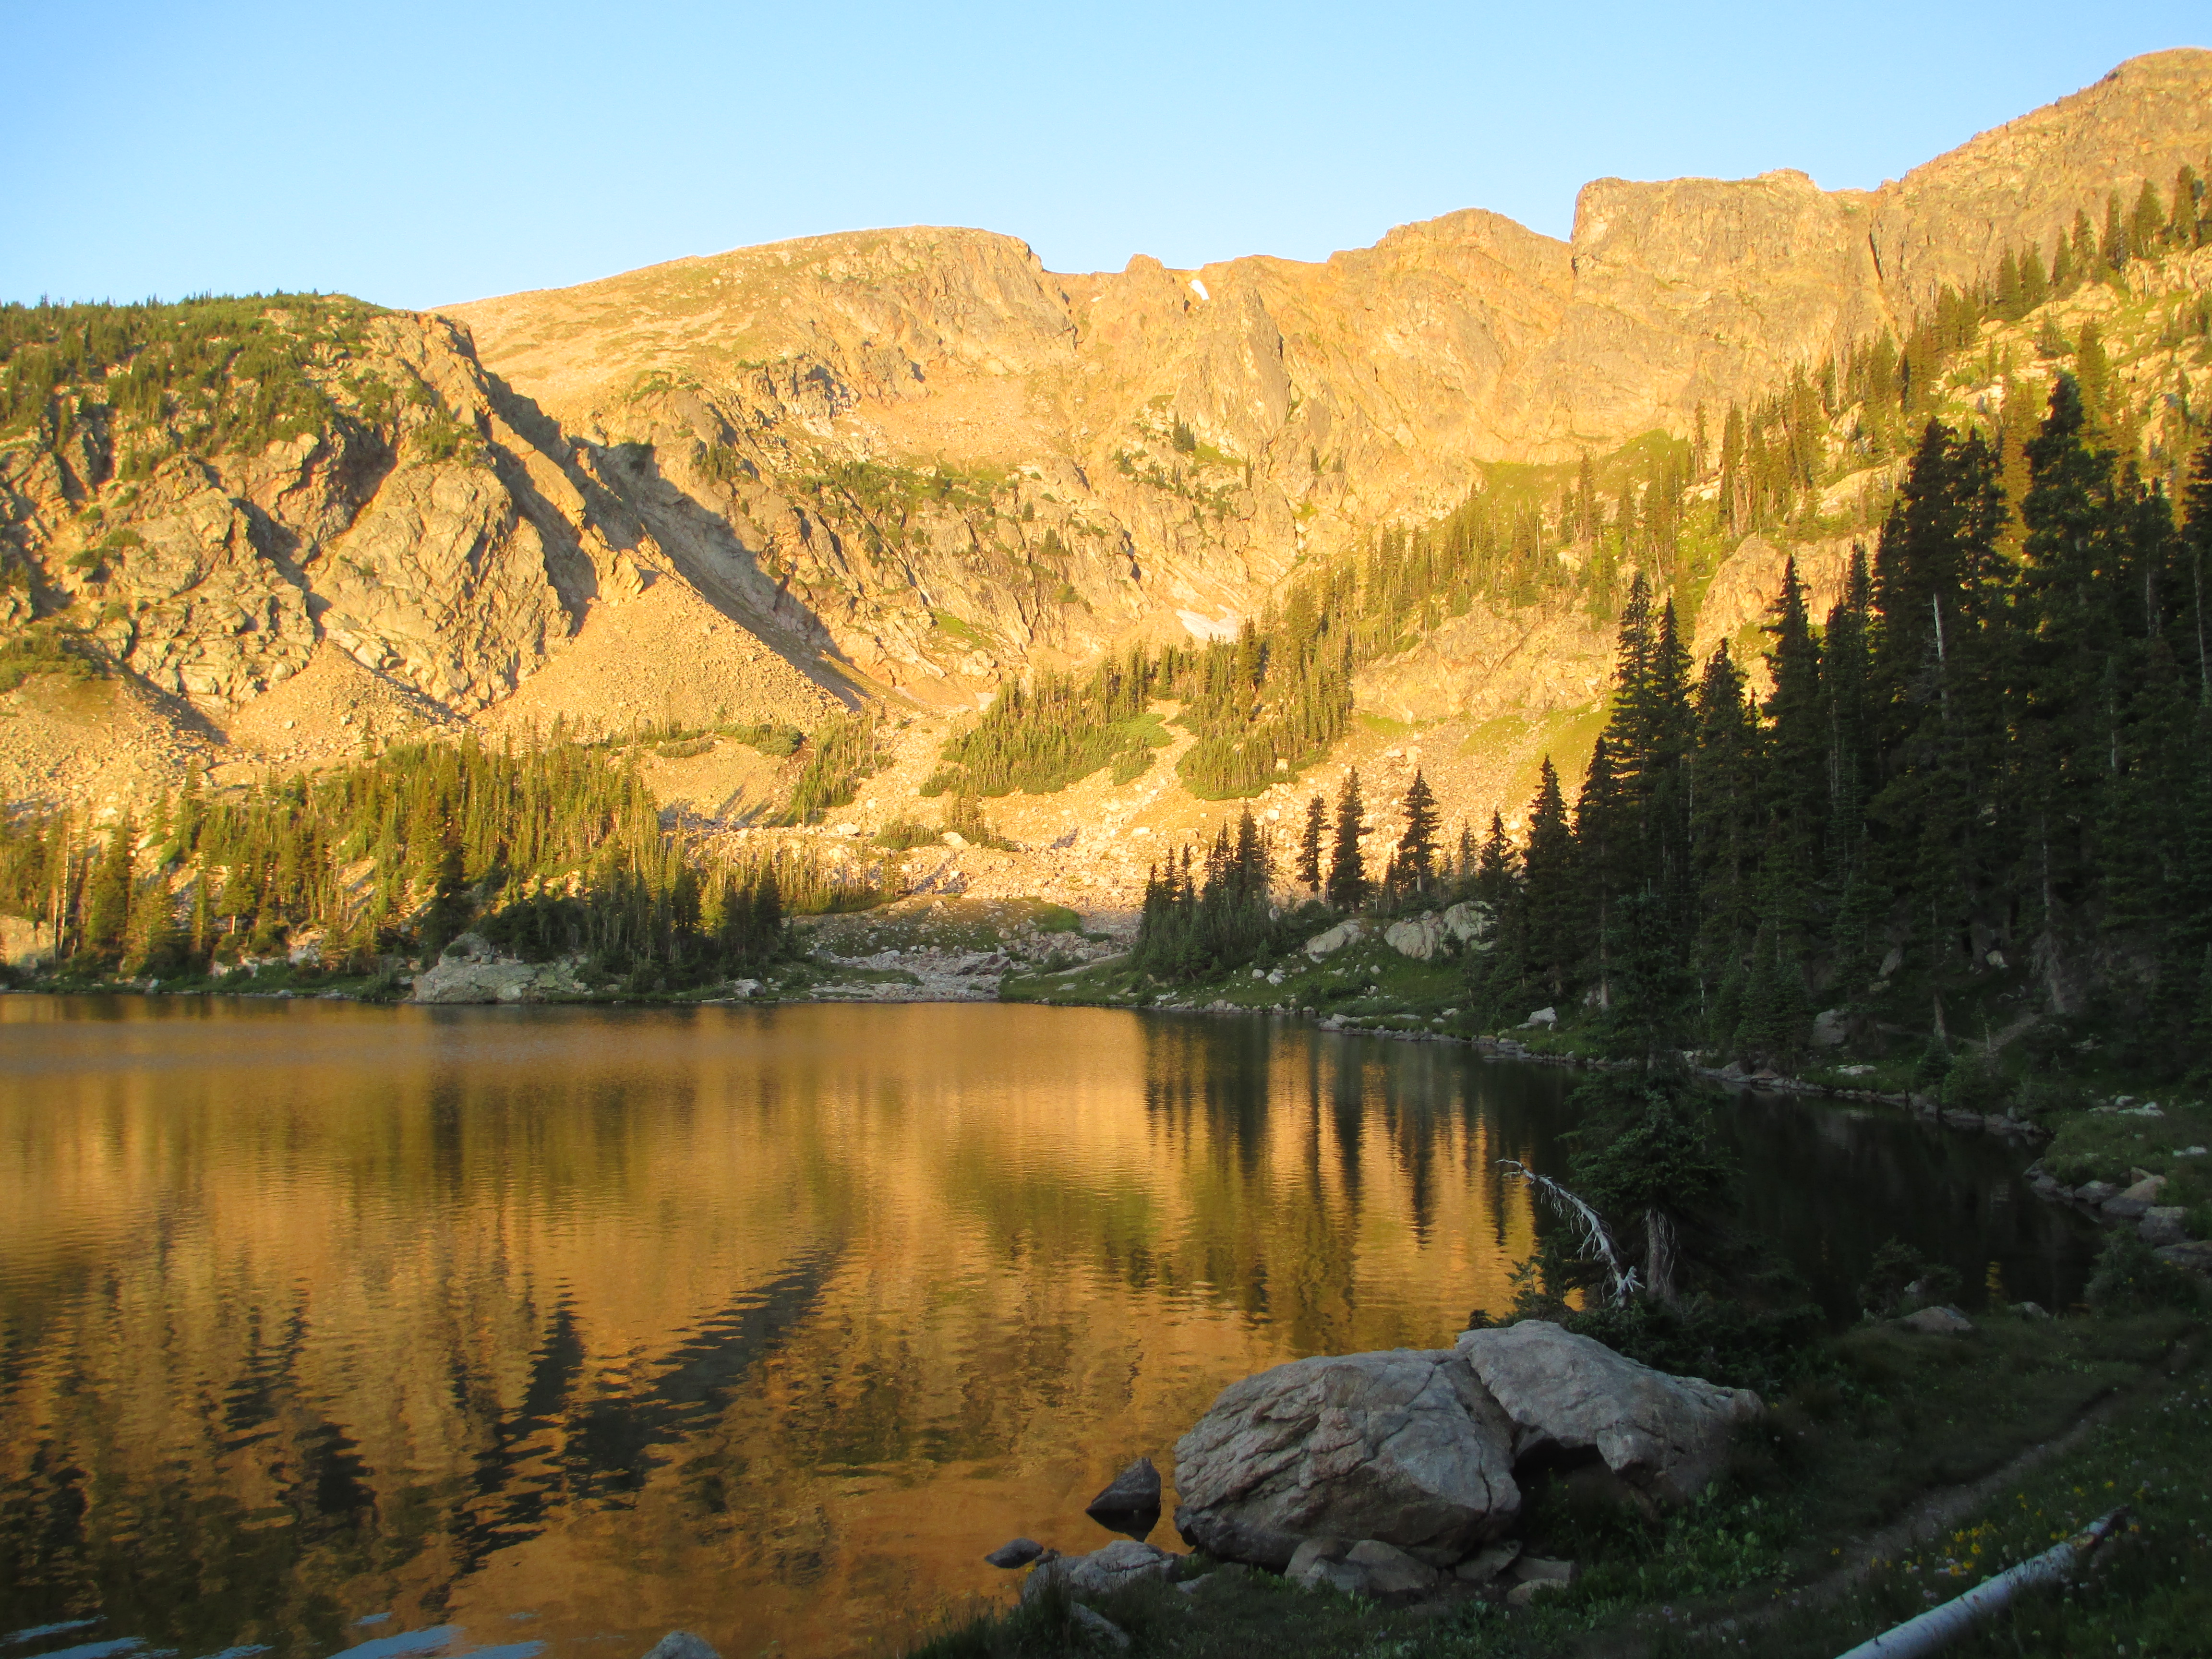 USA Western/Rocky Mountain NP, James Peak/Indian Peak Wilderness Area, , Walkopedia